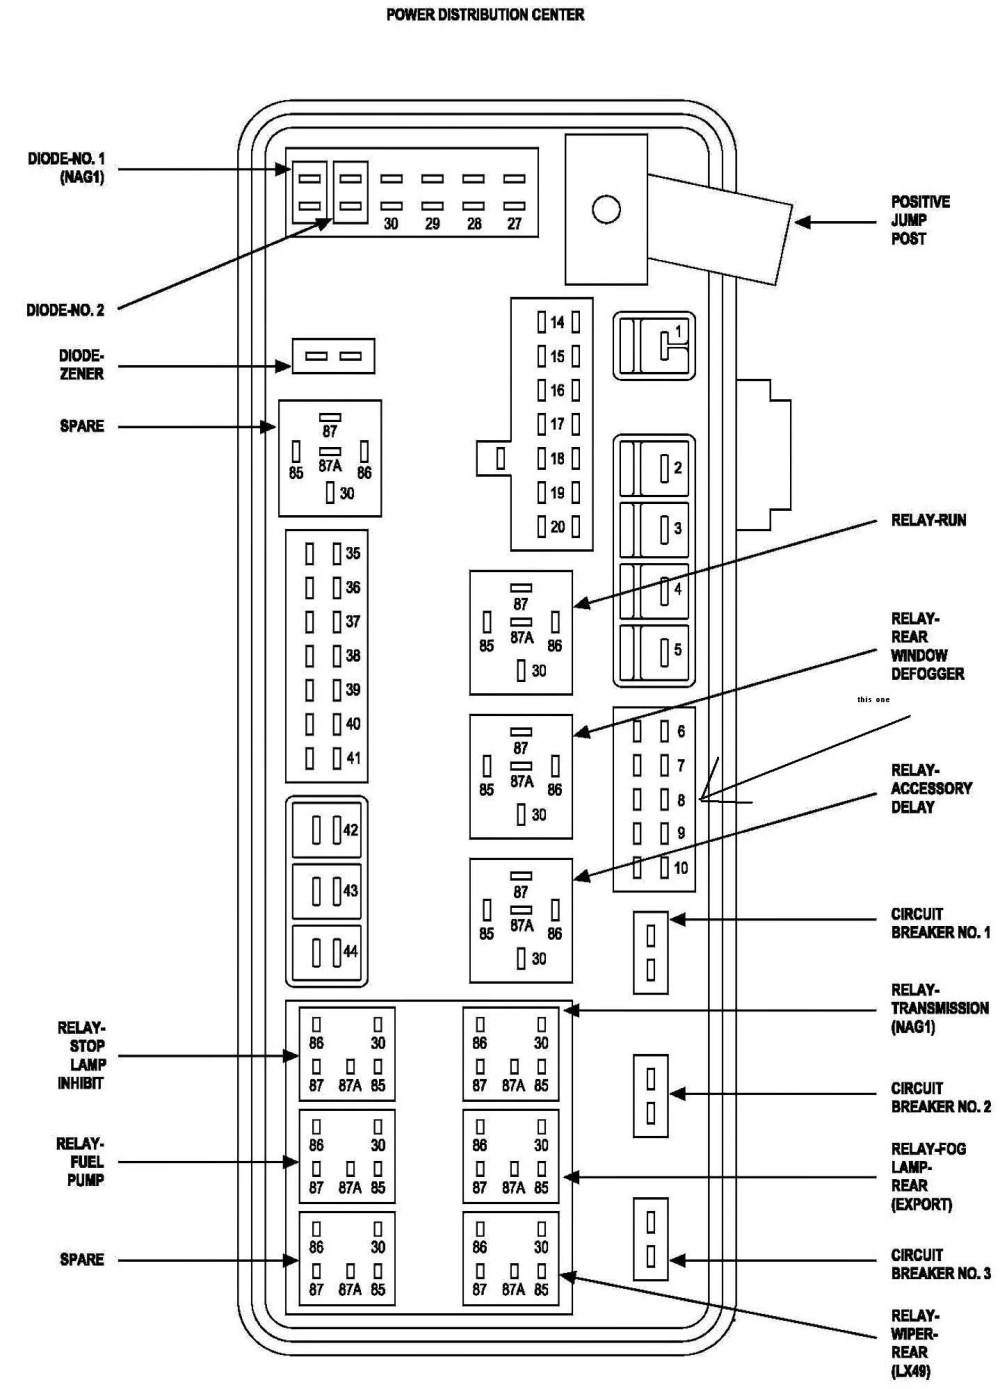 medium resolution of dodge ram 3500 fuse box diagram wiring diagram user 2000 dodge stratus fuse box diagram 07